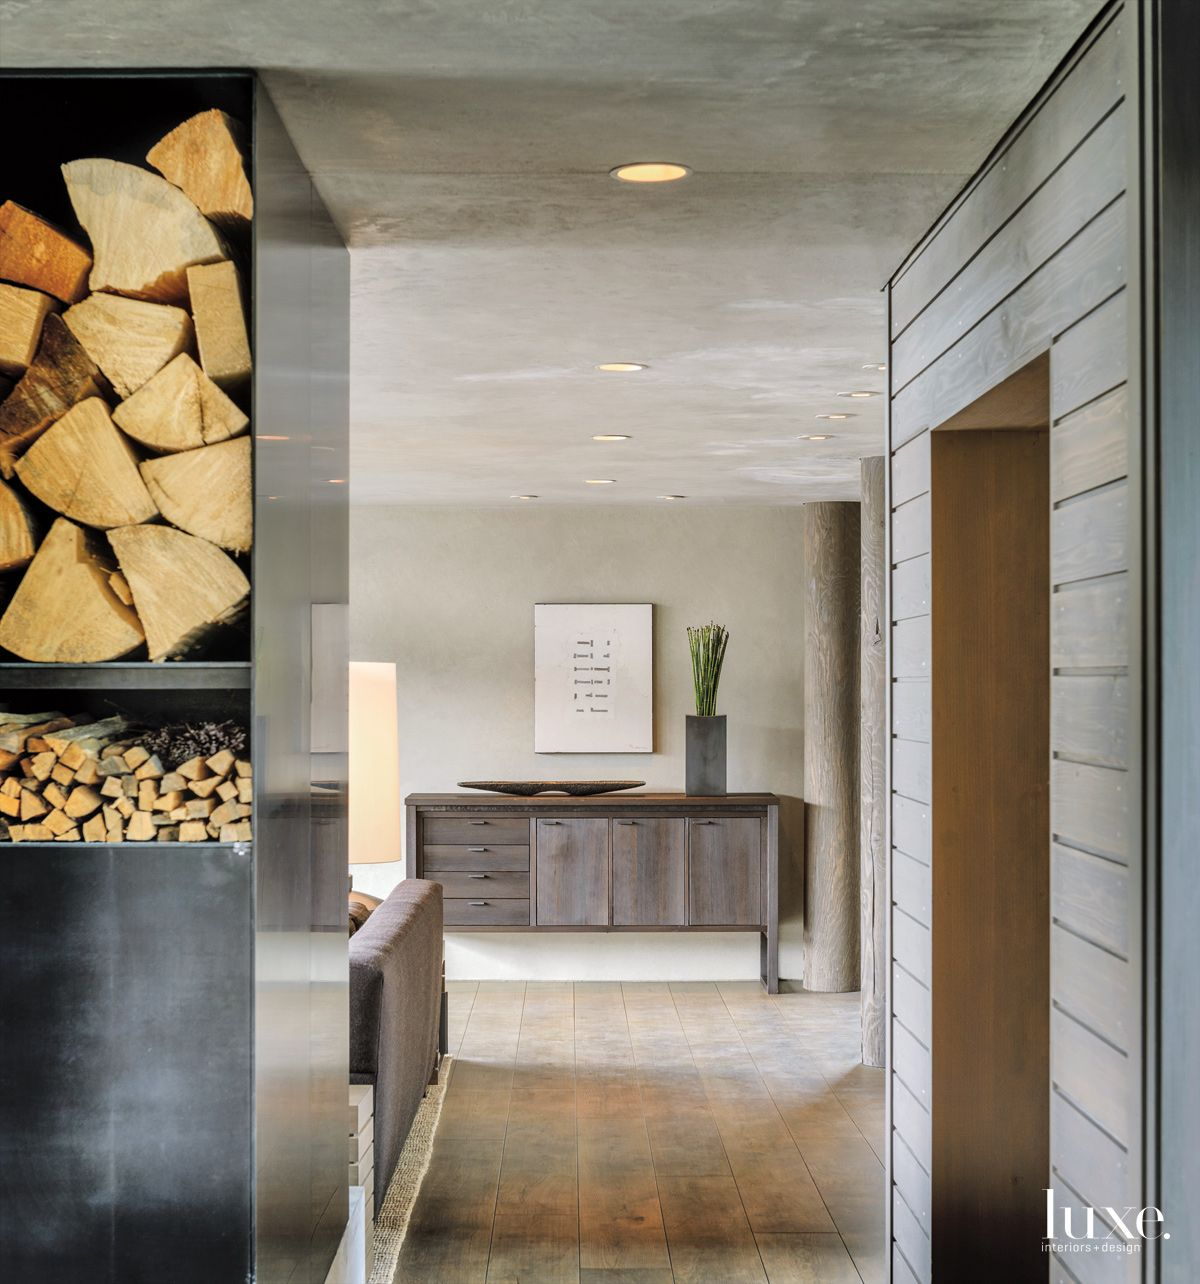 Understated Modernism in a Stunning Montana Home